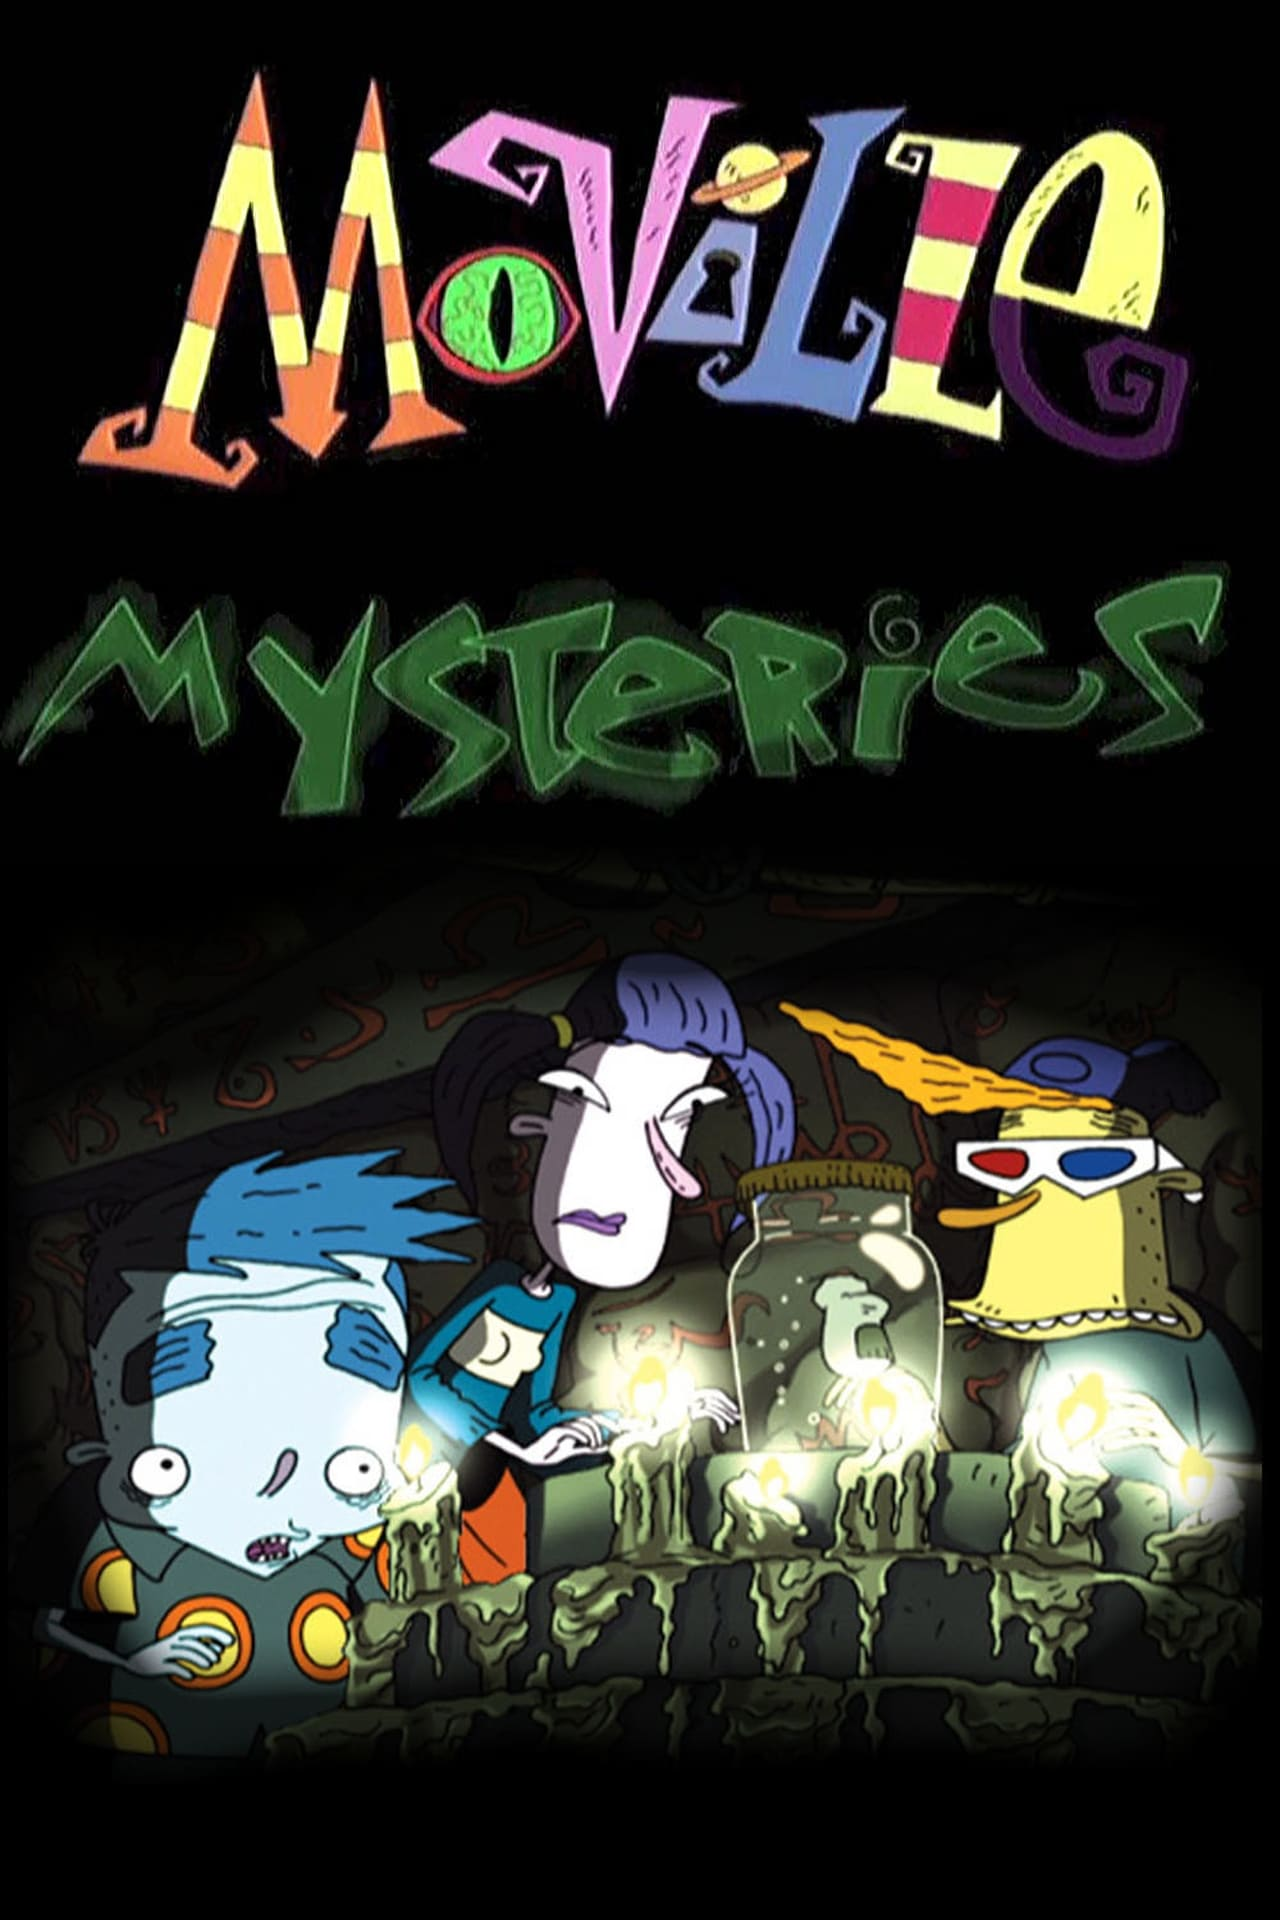 Moville Mysteries (2002)